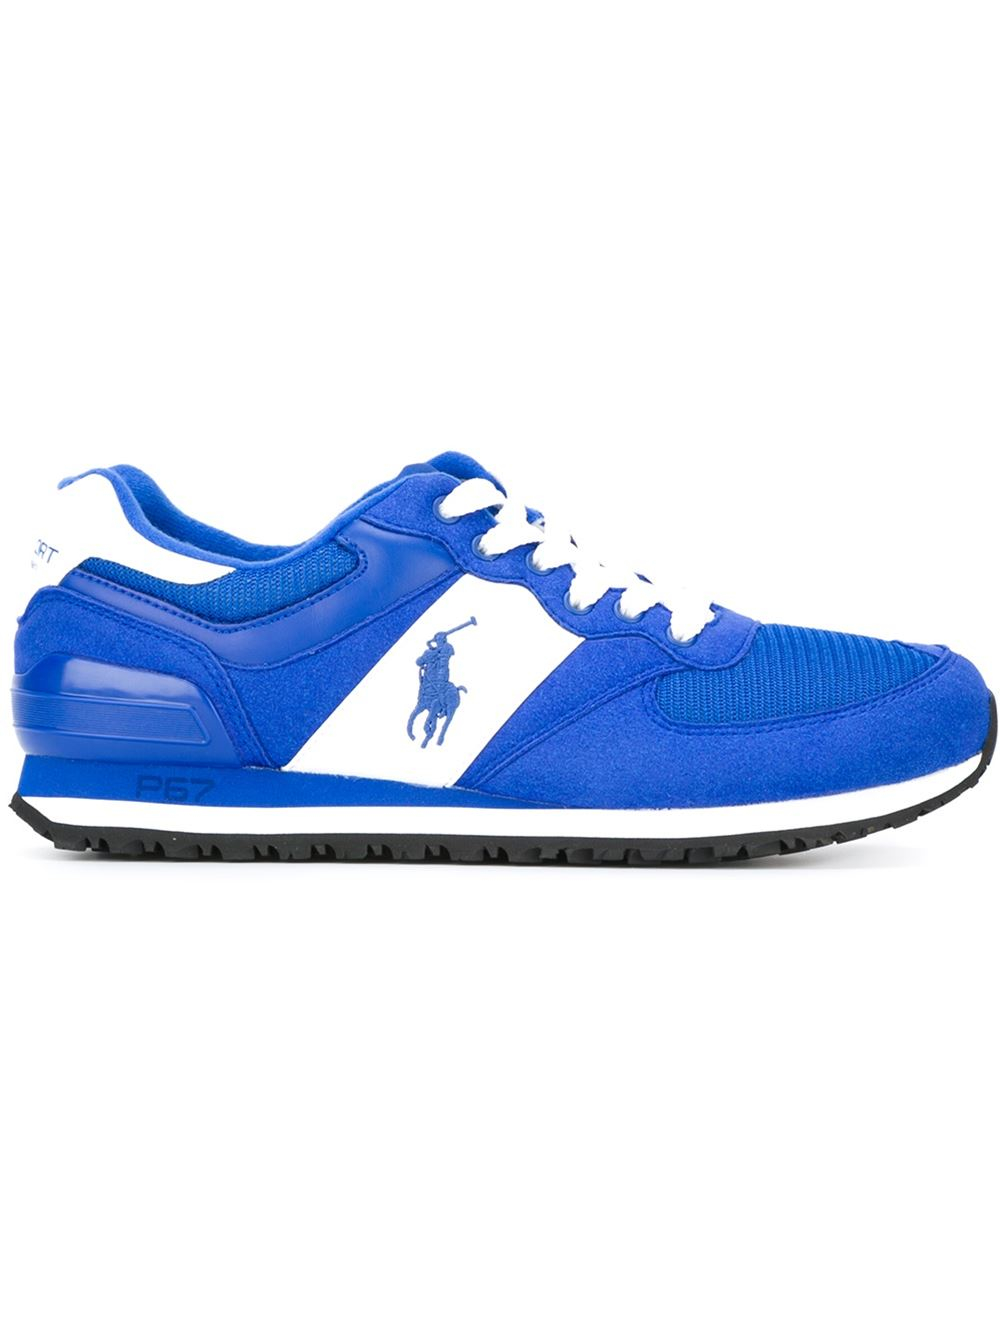 polo ralph lauren logo running sneakers in blue for men lyst. Black Bedroom Furniture Sets. Home Design Ideas